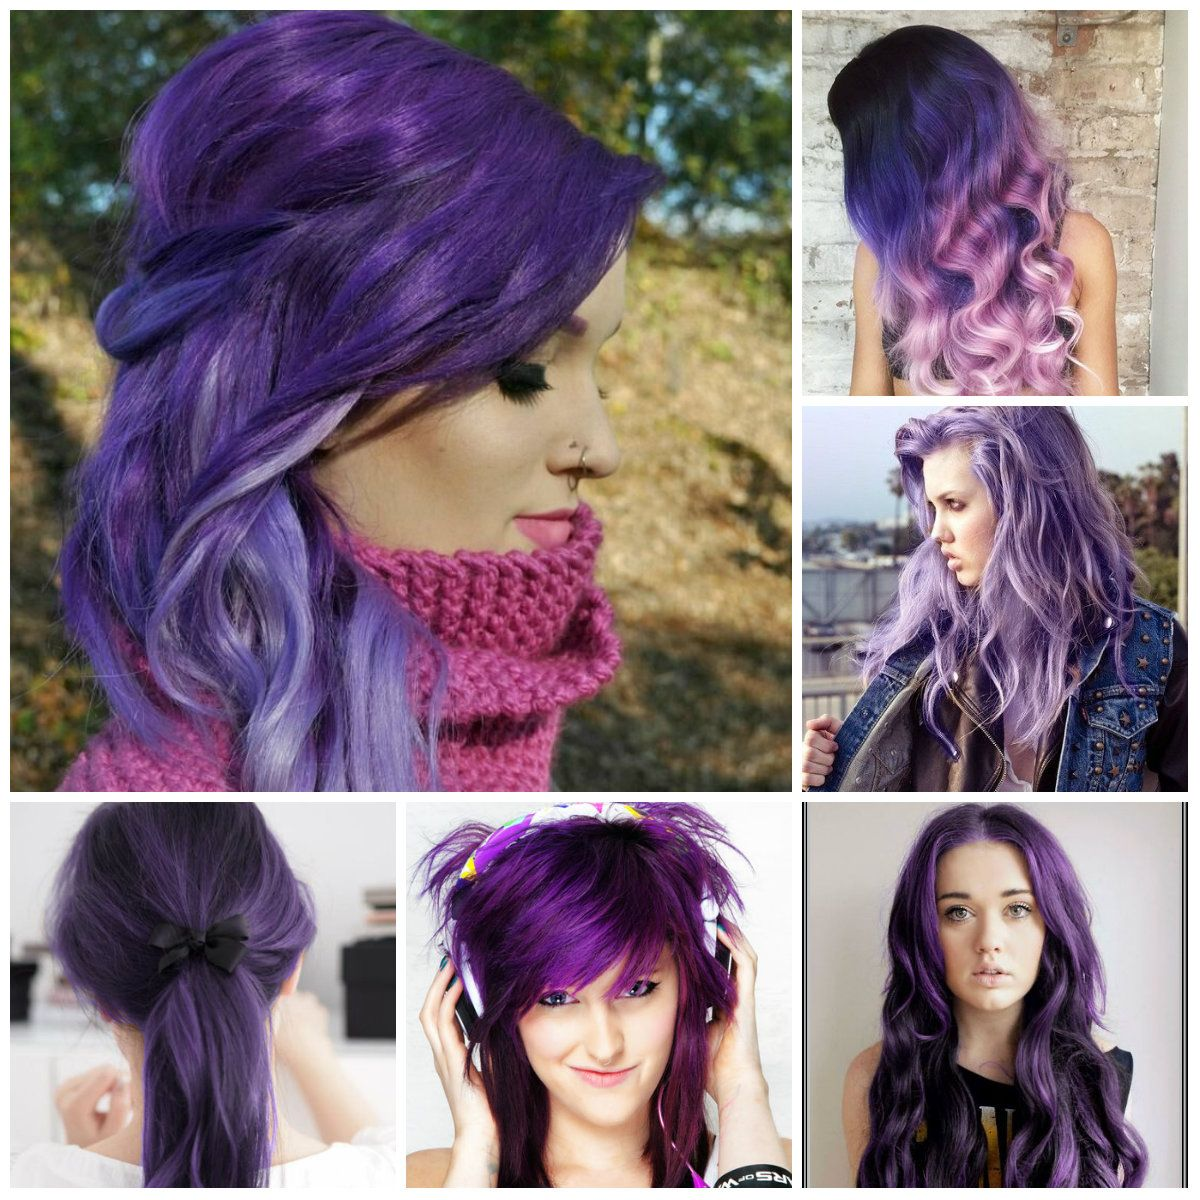 Hairstyles 2016 dark hair - 2016 Purple Hair Color Ideas Haircuts Hairstyles 2016 And Hair Colors For Short Long